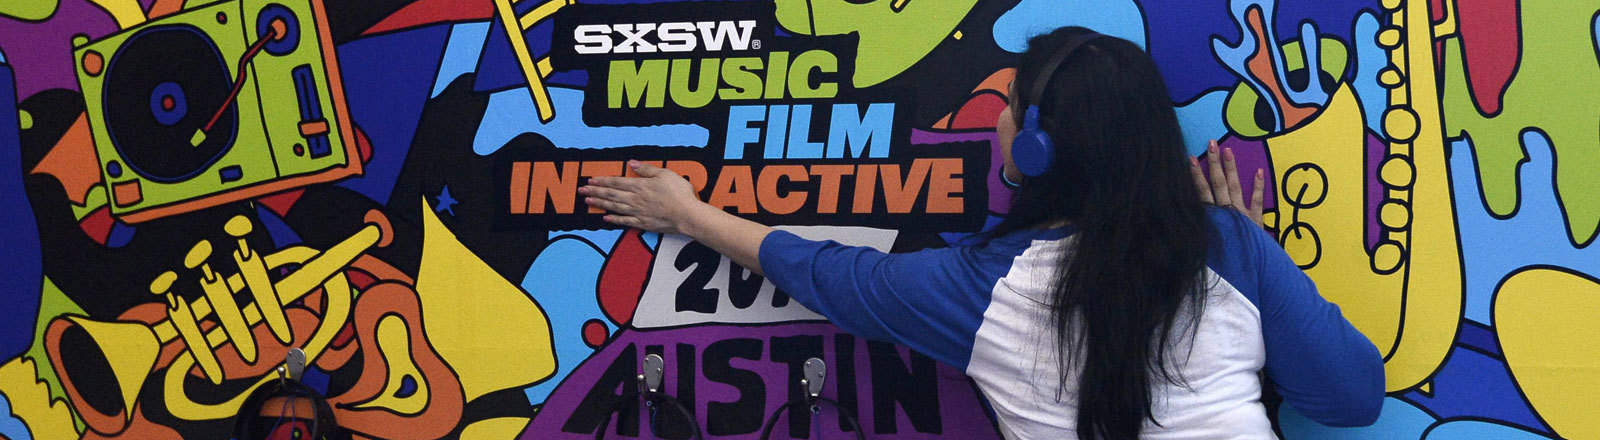 South by Southwest (SXSW) Konferenz und Festival